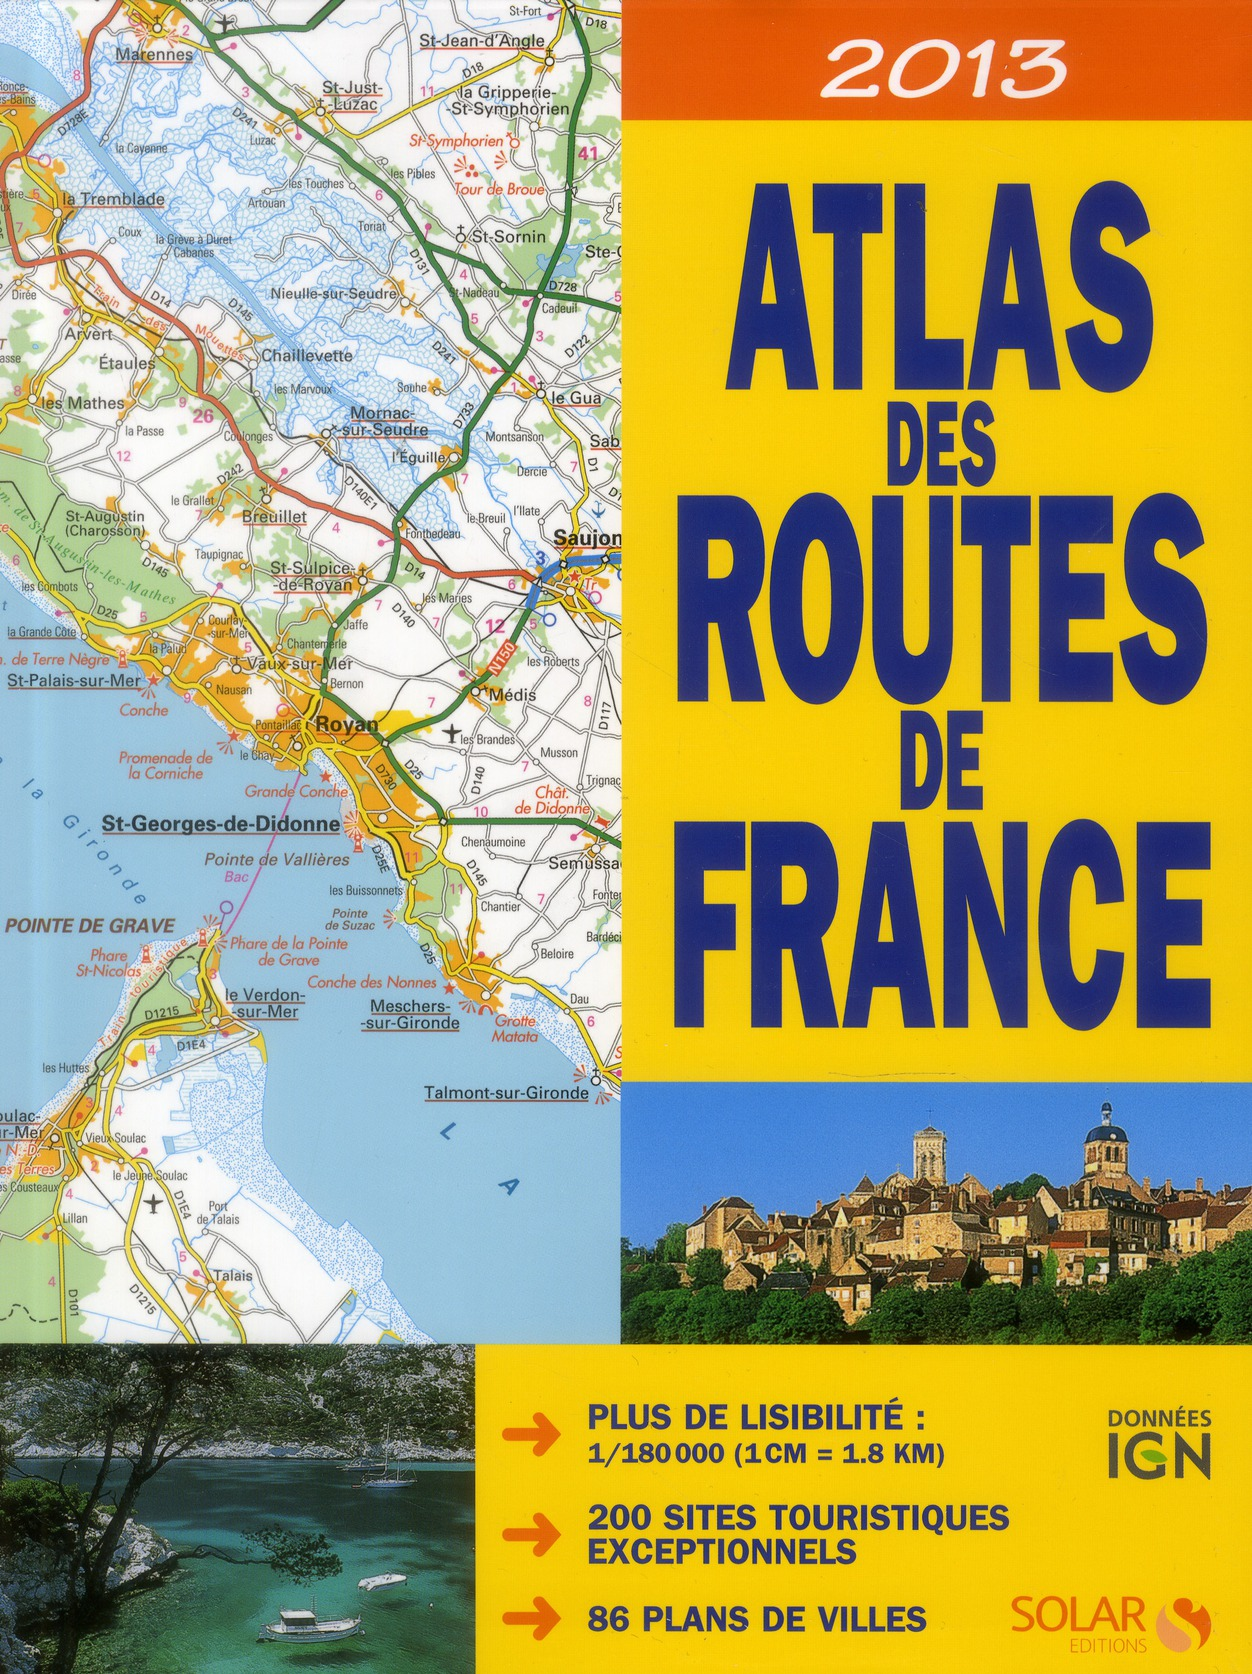 Atlas des routes de france (édition 2013)